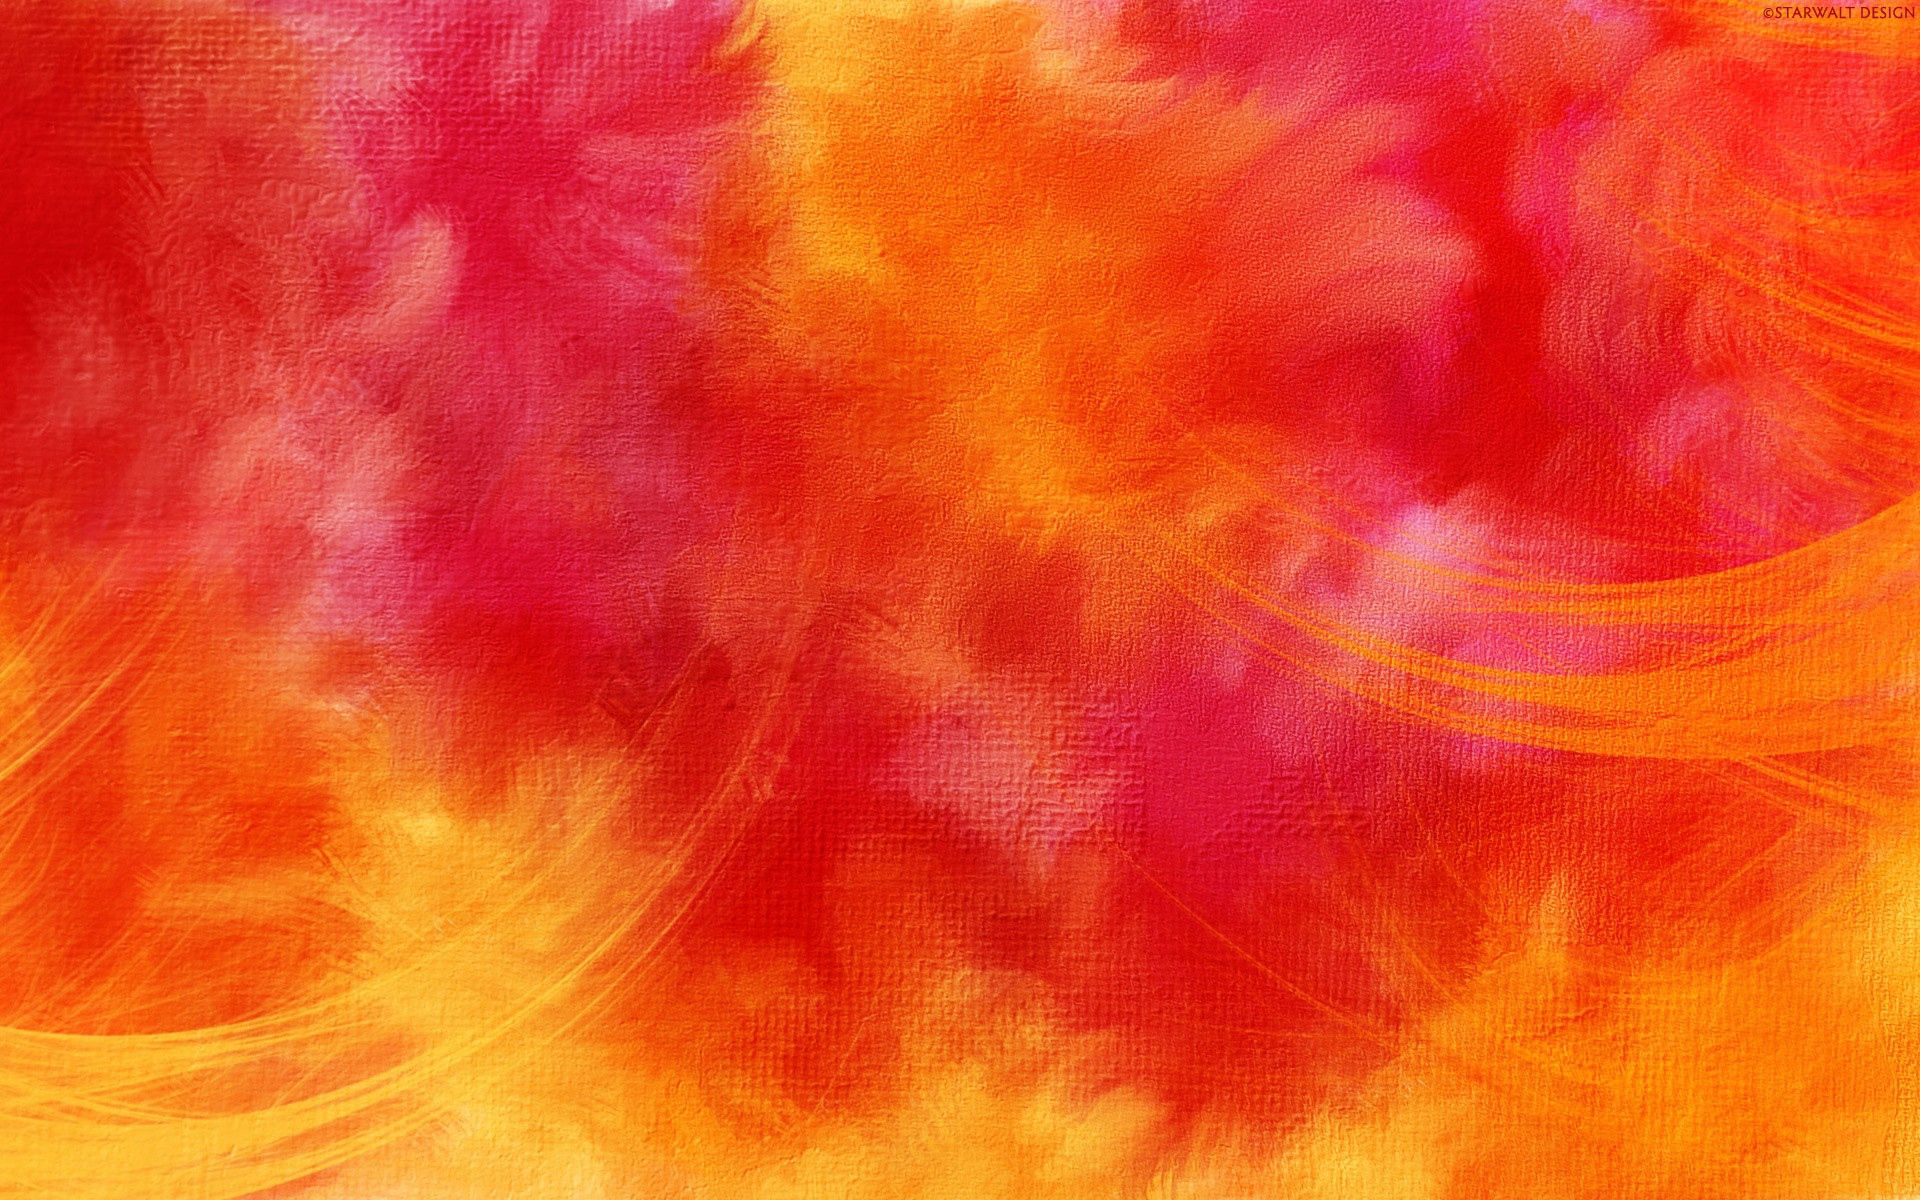 82075 free download Orange wallpapers for phone, Abstract, Colorful, Colourful, Bright Orange images and screensavers for mobile